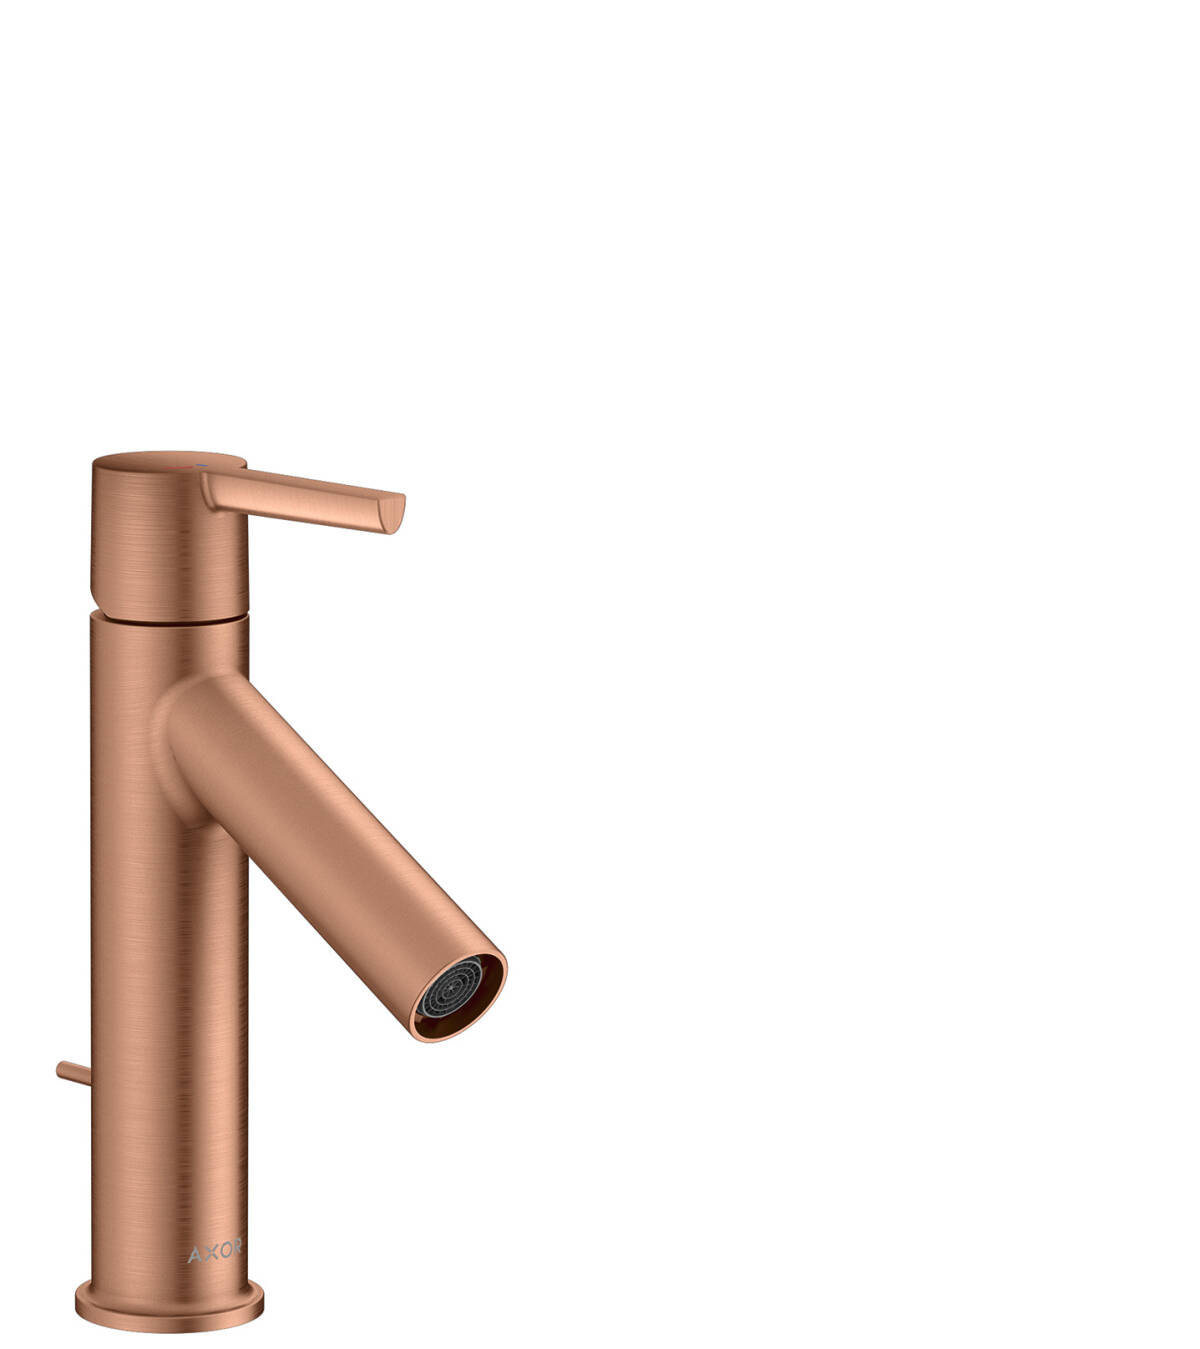 Single lever basin mixer 100 CoolStart with lever handle and pop-up waste set, Brushed Red Gold, 10007310